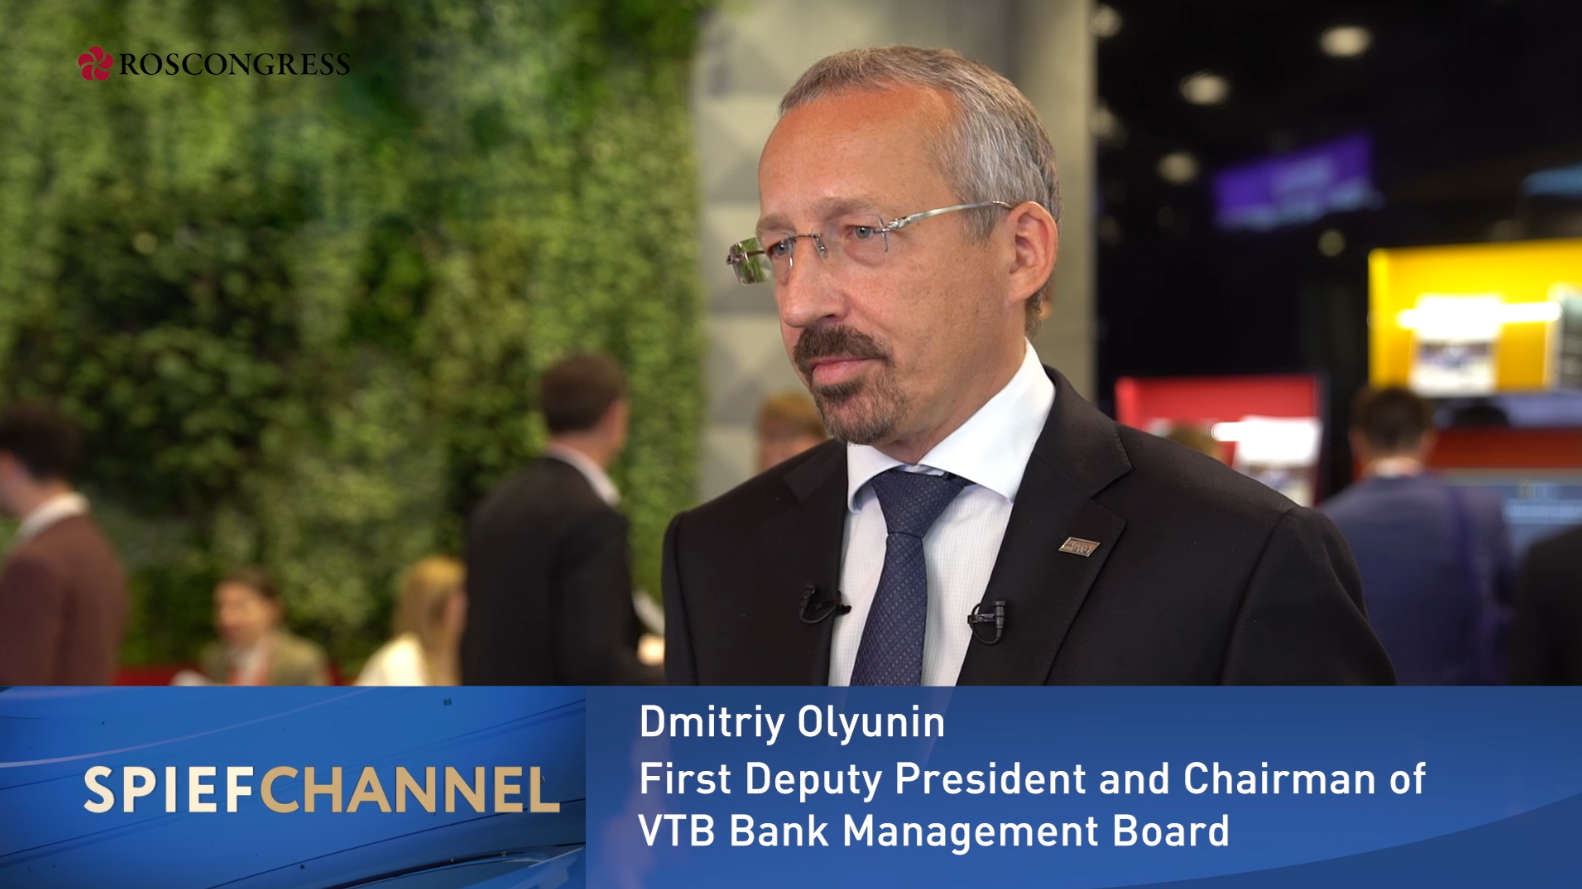 Dmitry Olyunin, First Deputy President and Chairman of  Management Board, VTB Bank